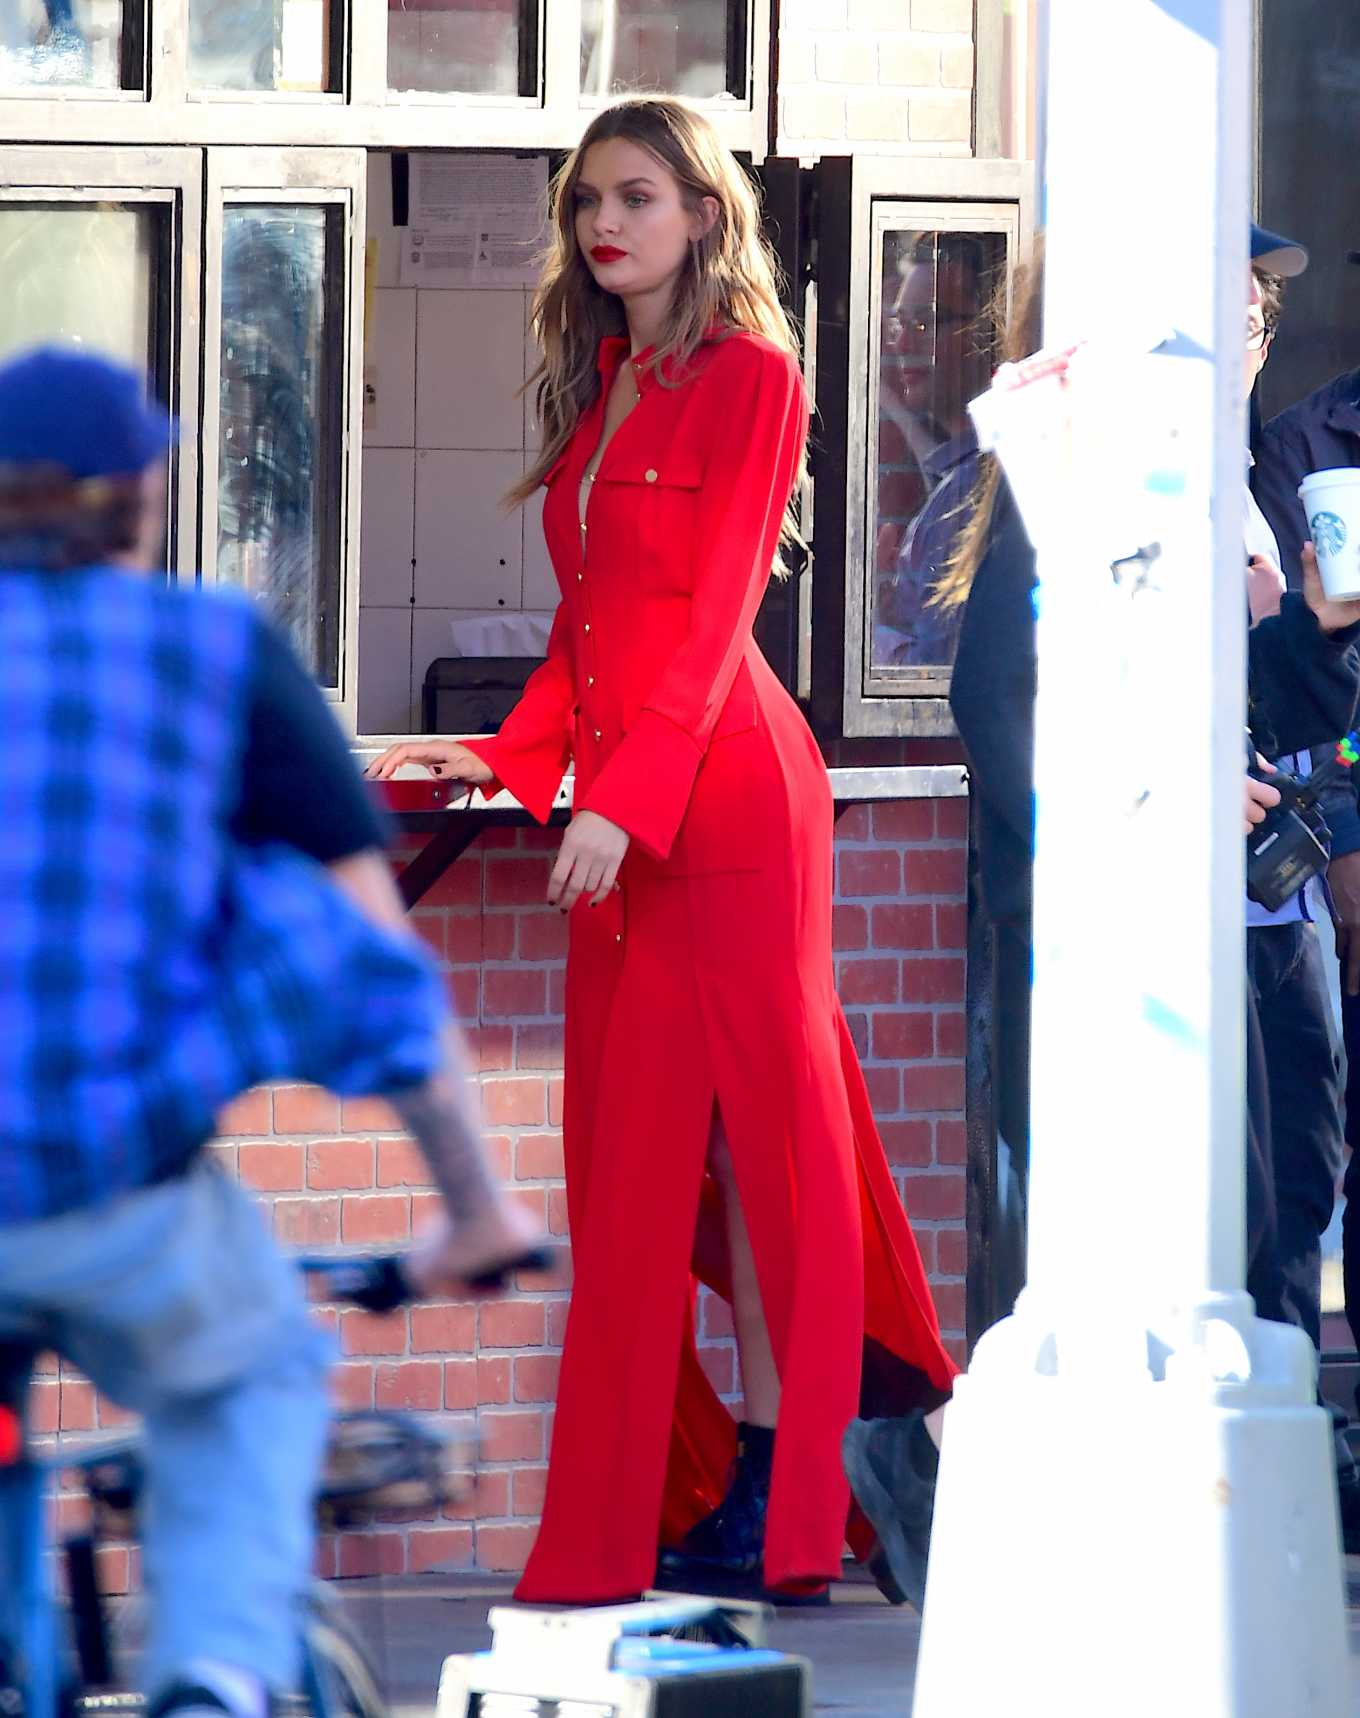 Josephine Skriver in red outfit filming set for Maybelline shoot in NYC